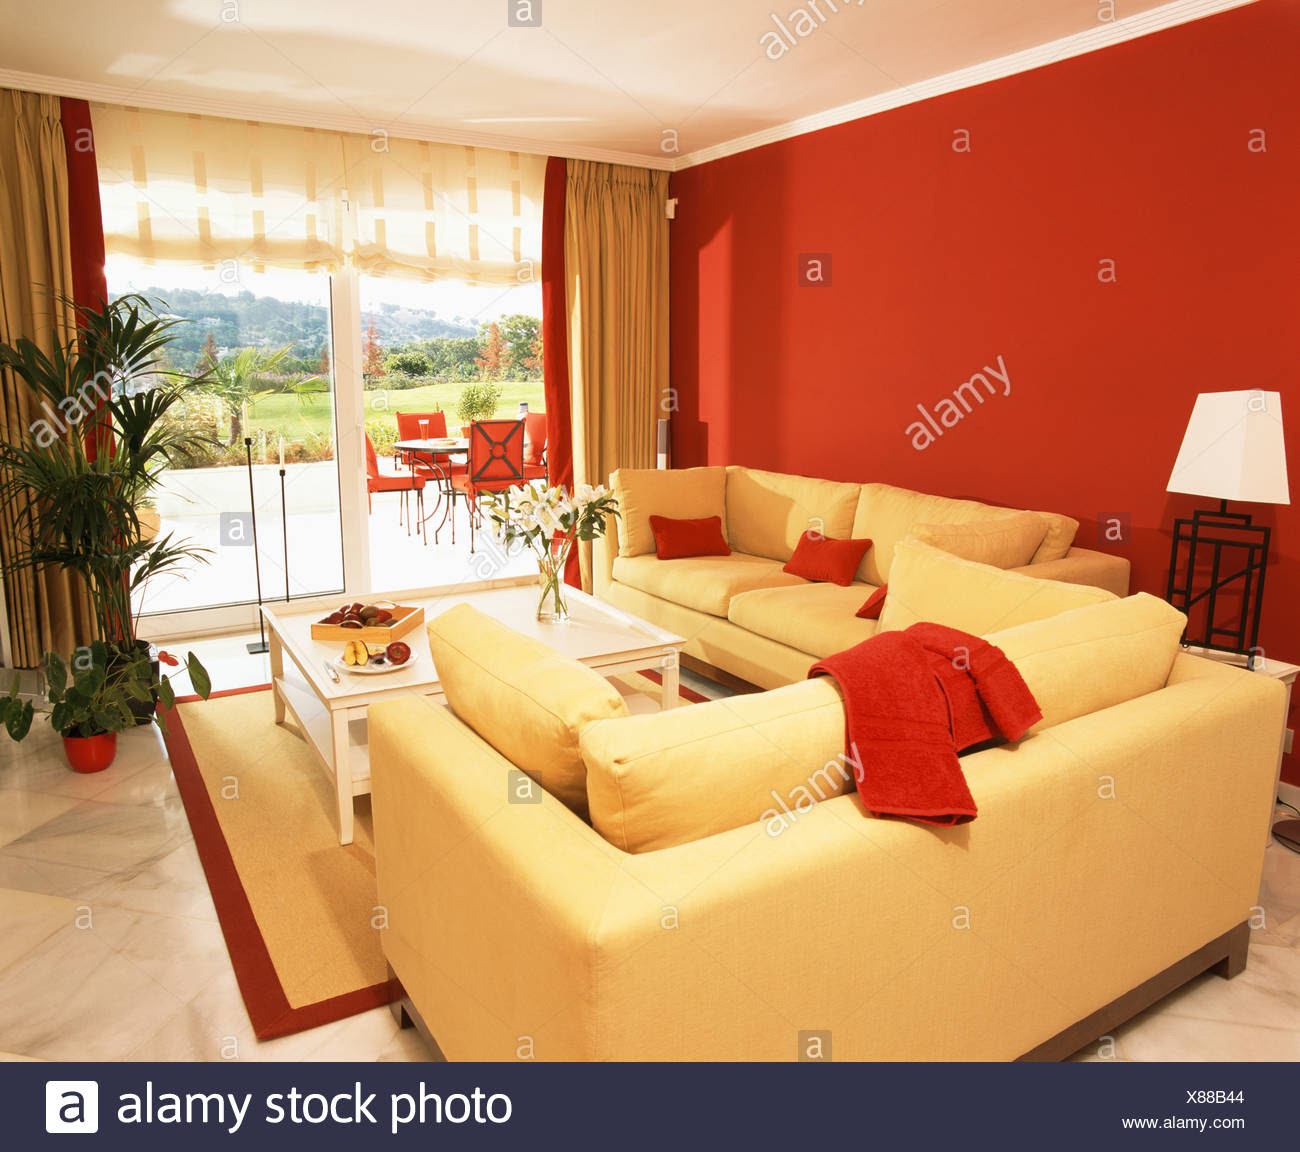 Bright Yellow Sofas And Red Wall In Modern Living Room With French